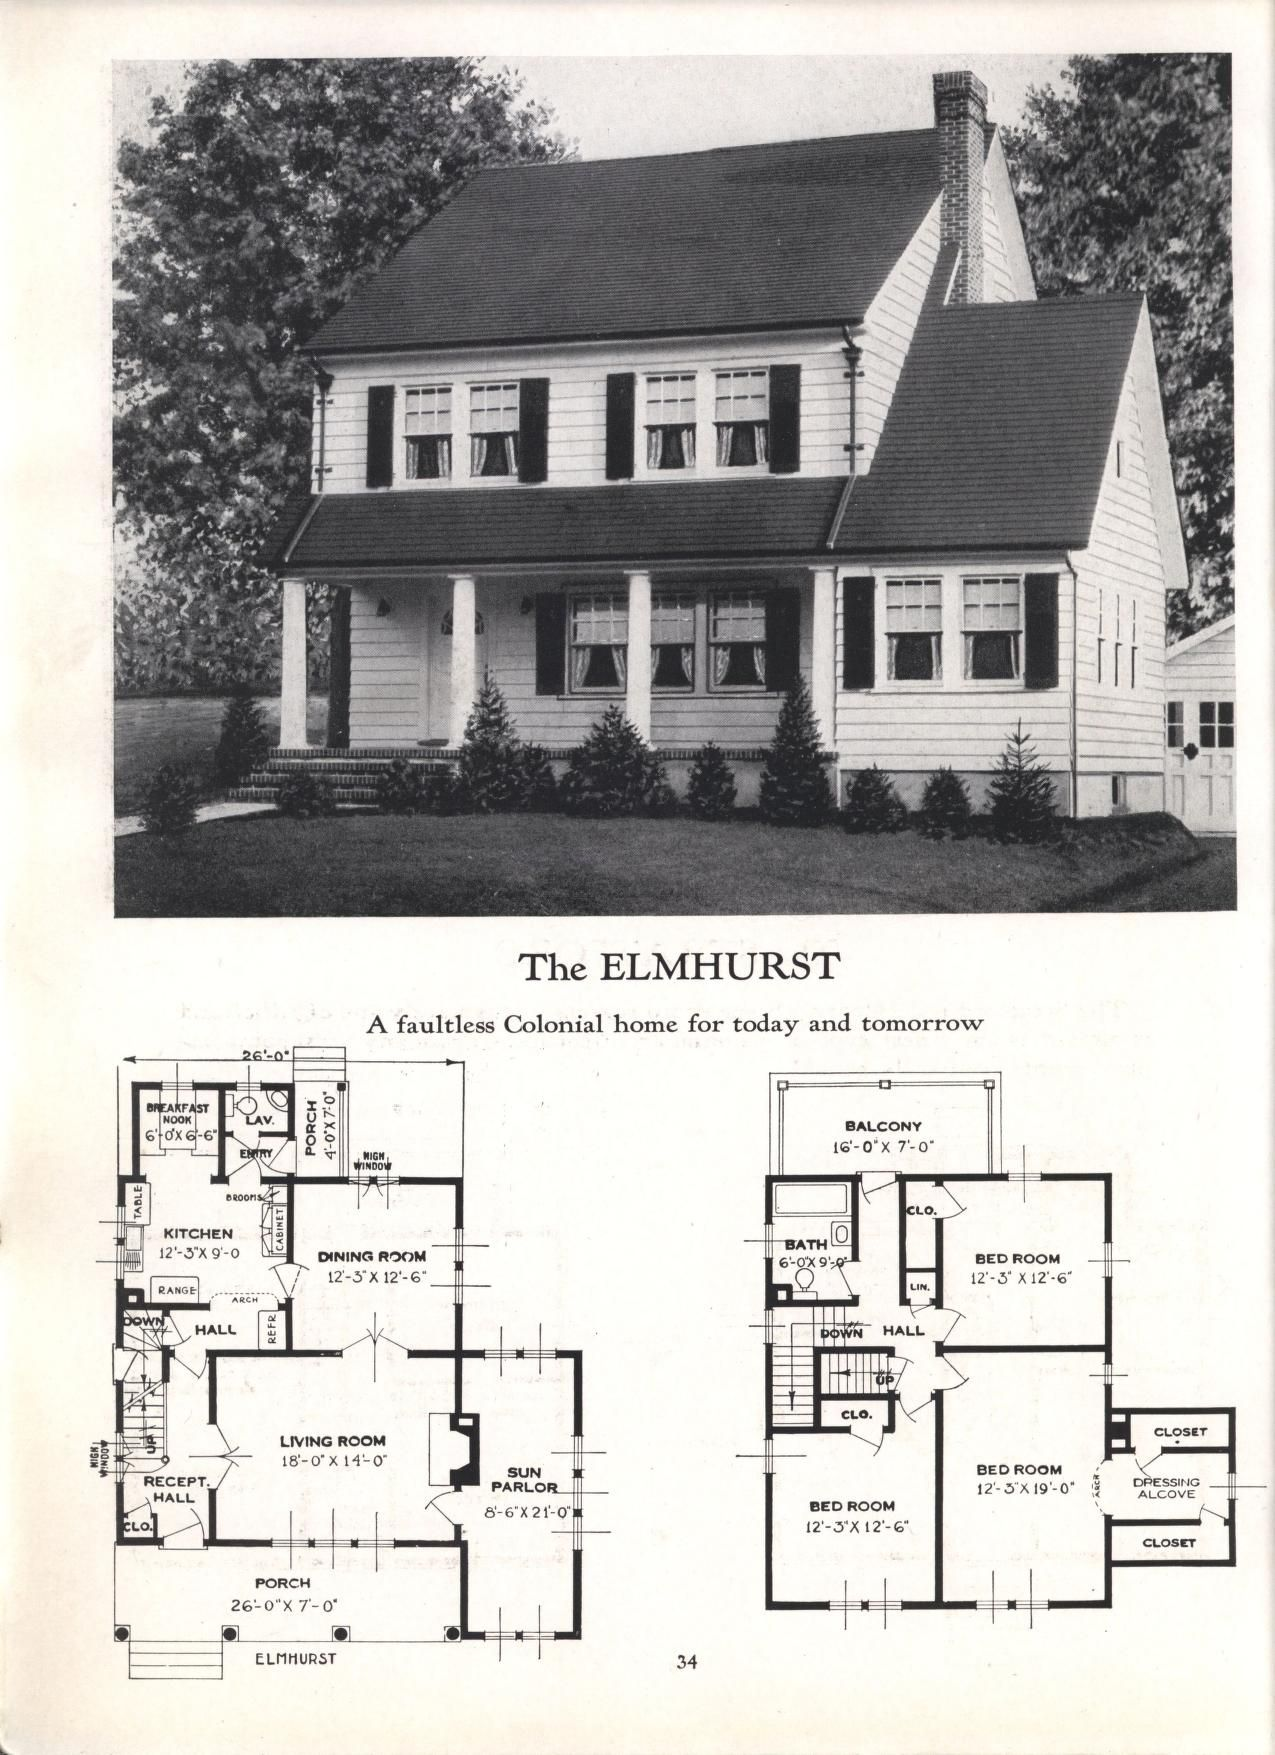 Better Homes At Lower Cost No 17 By Standard Homes Co Publication Date 1930 The Elmhurst Vintage House Plans Colonial House Building Design